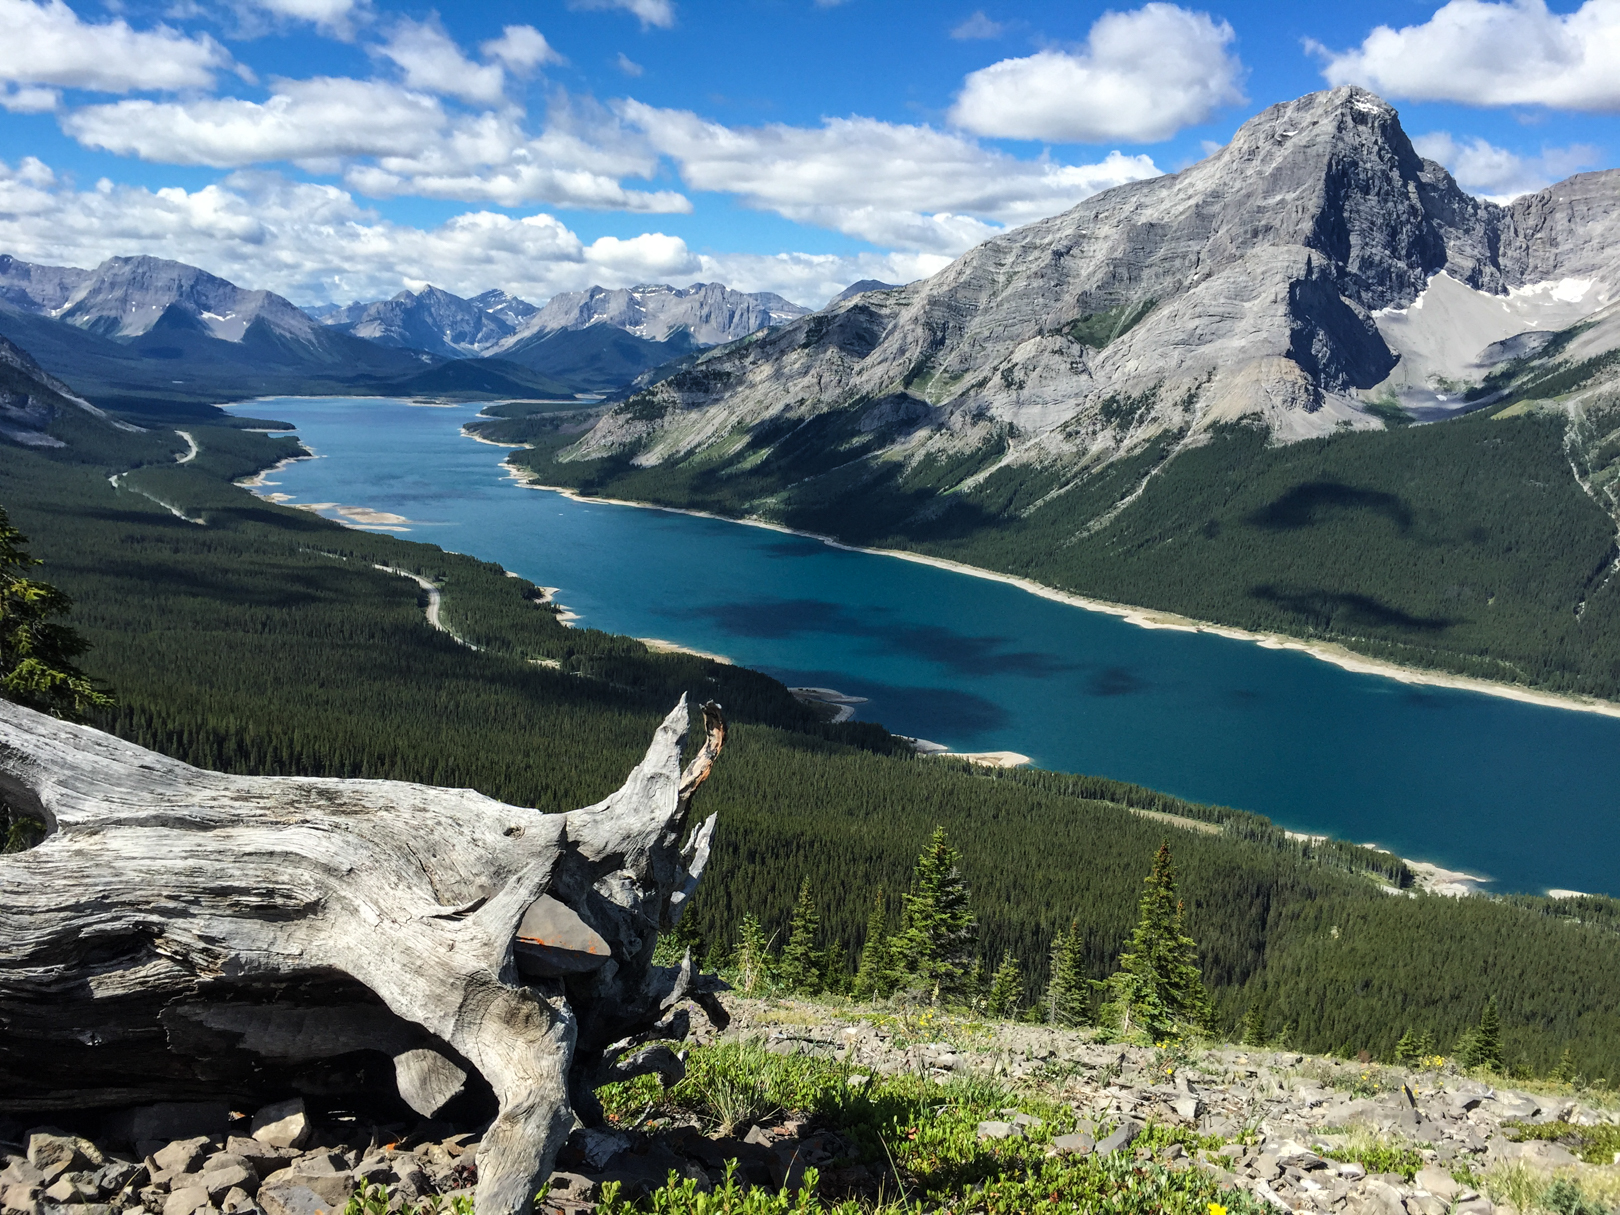 The Spray Lakes provide an fantastic backdrop to the hike